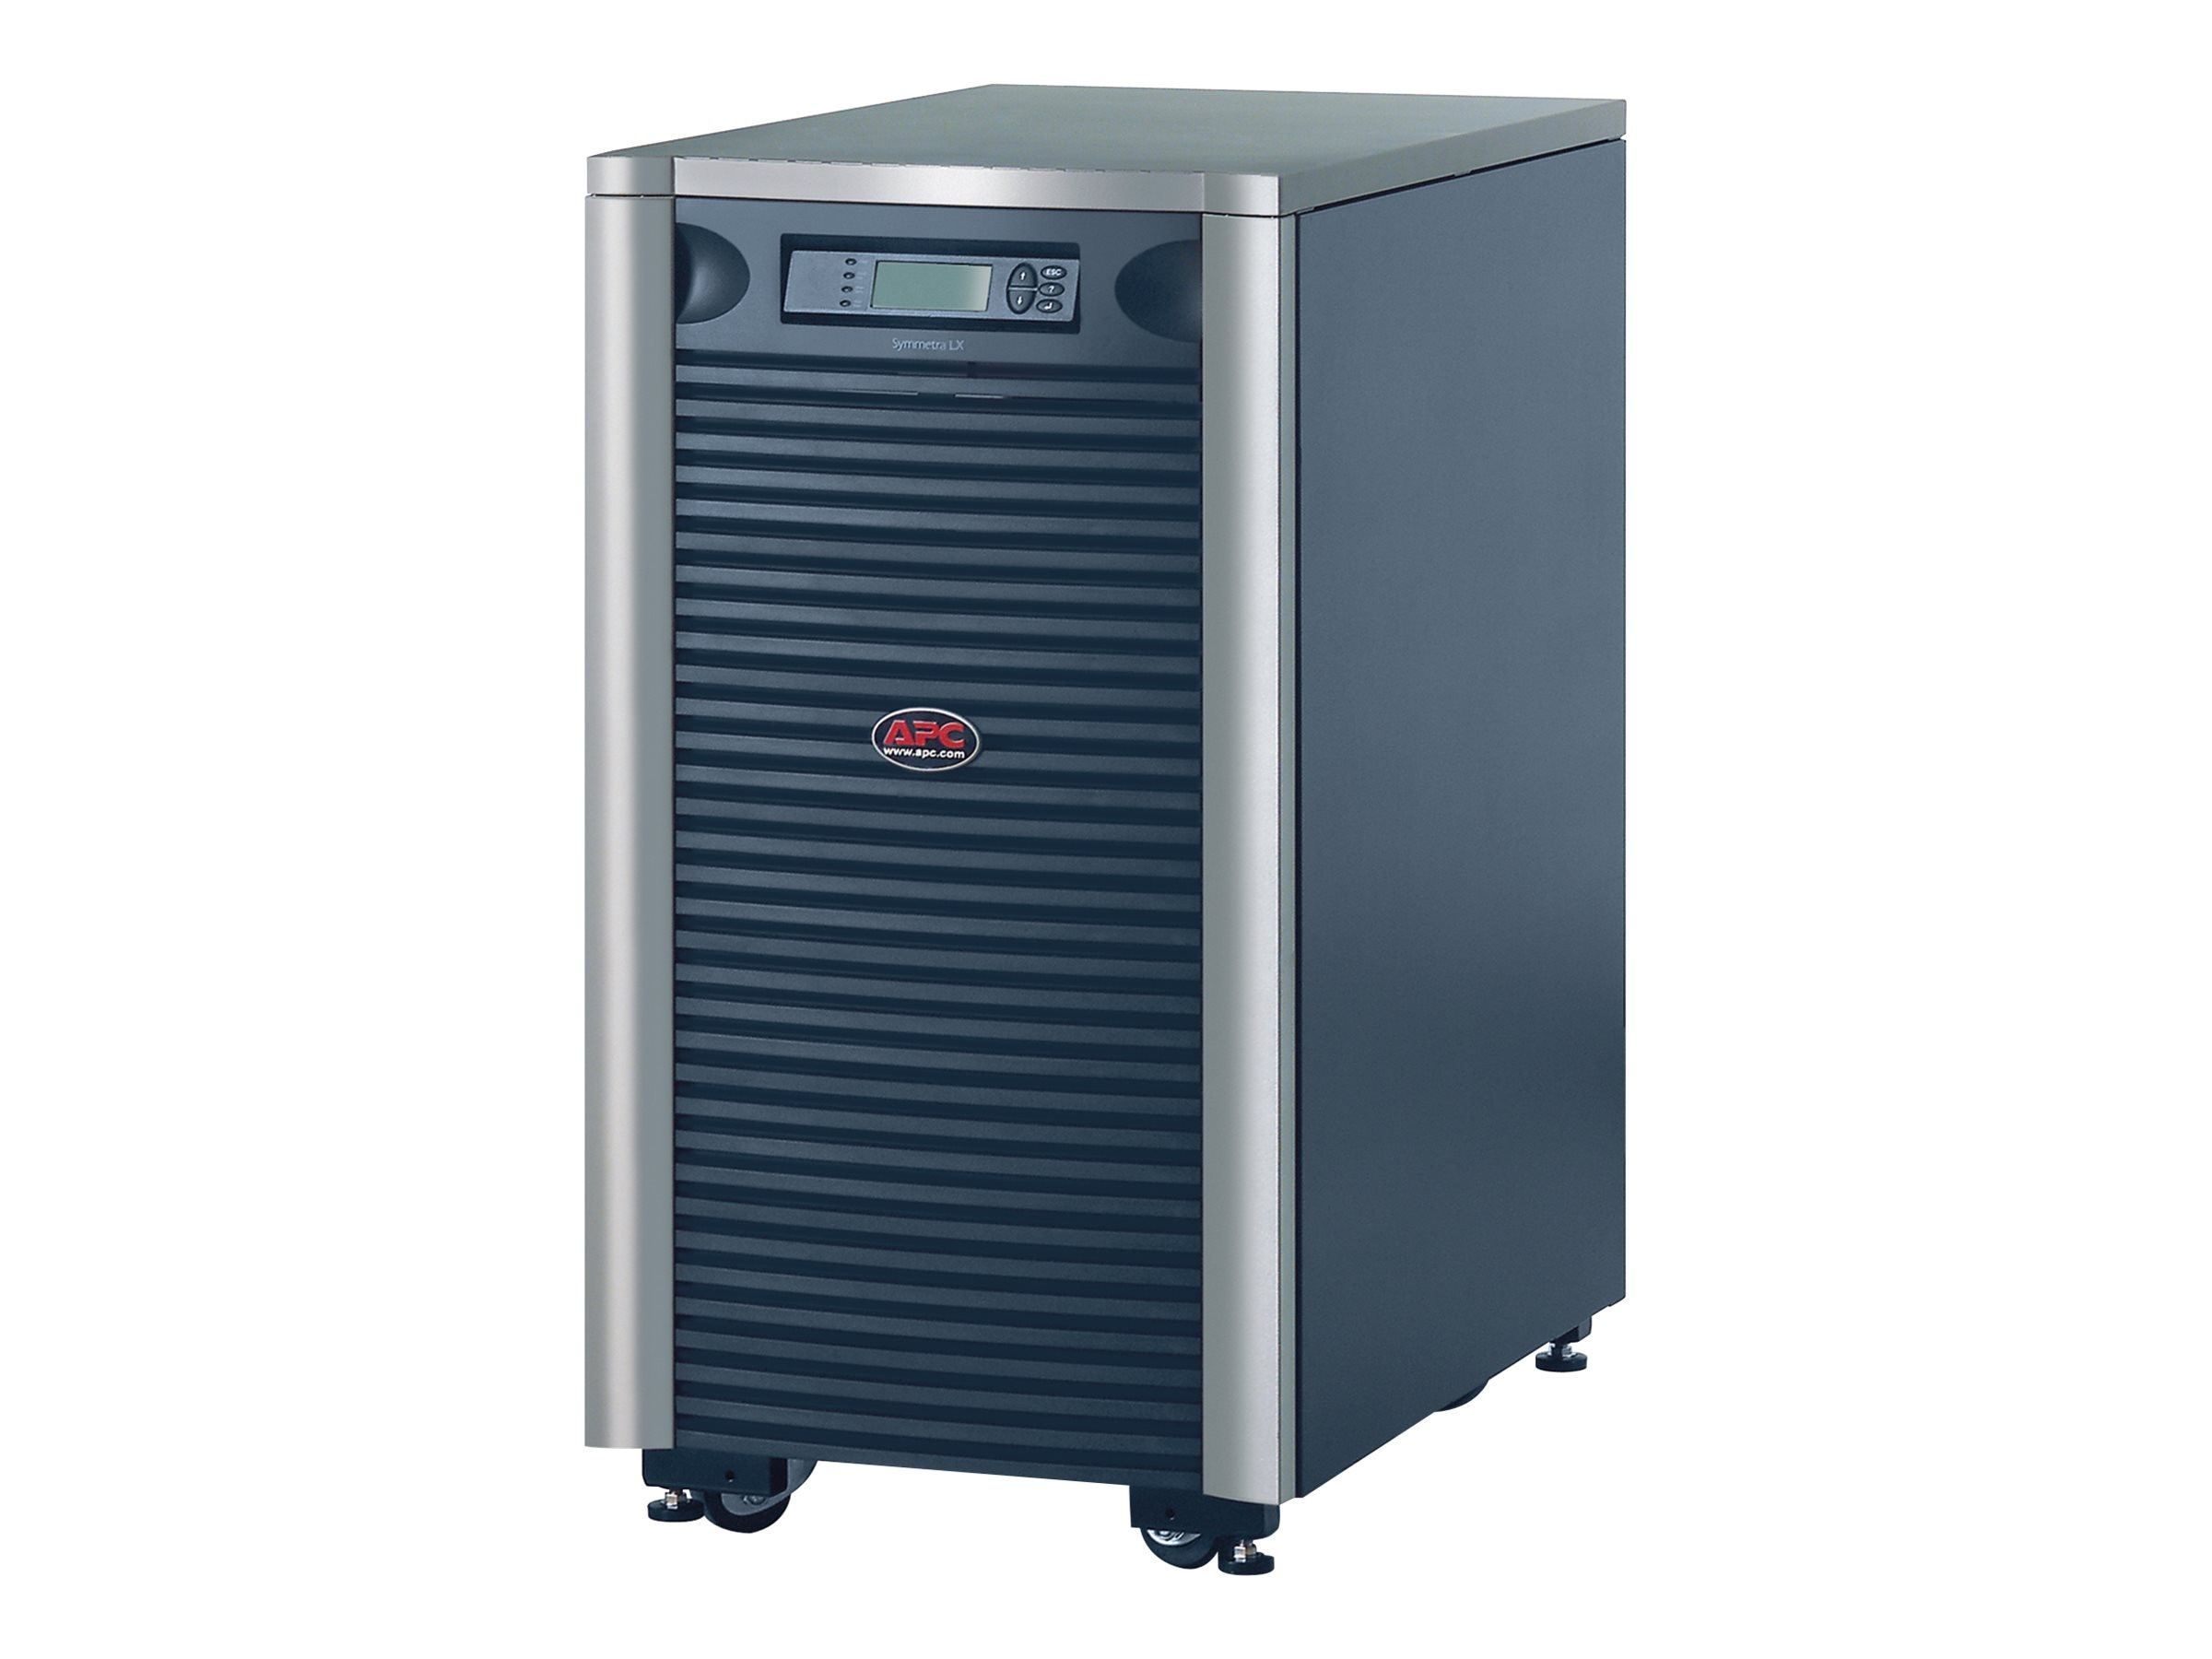 APC Symmetra LX 8kVA Scalable to 16kVA N+1 Tower Extended Runtime 208 240 Volts